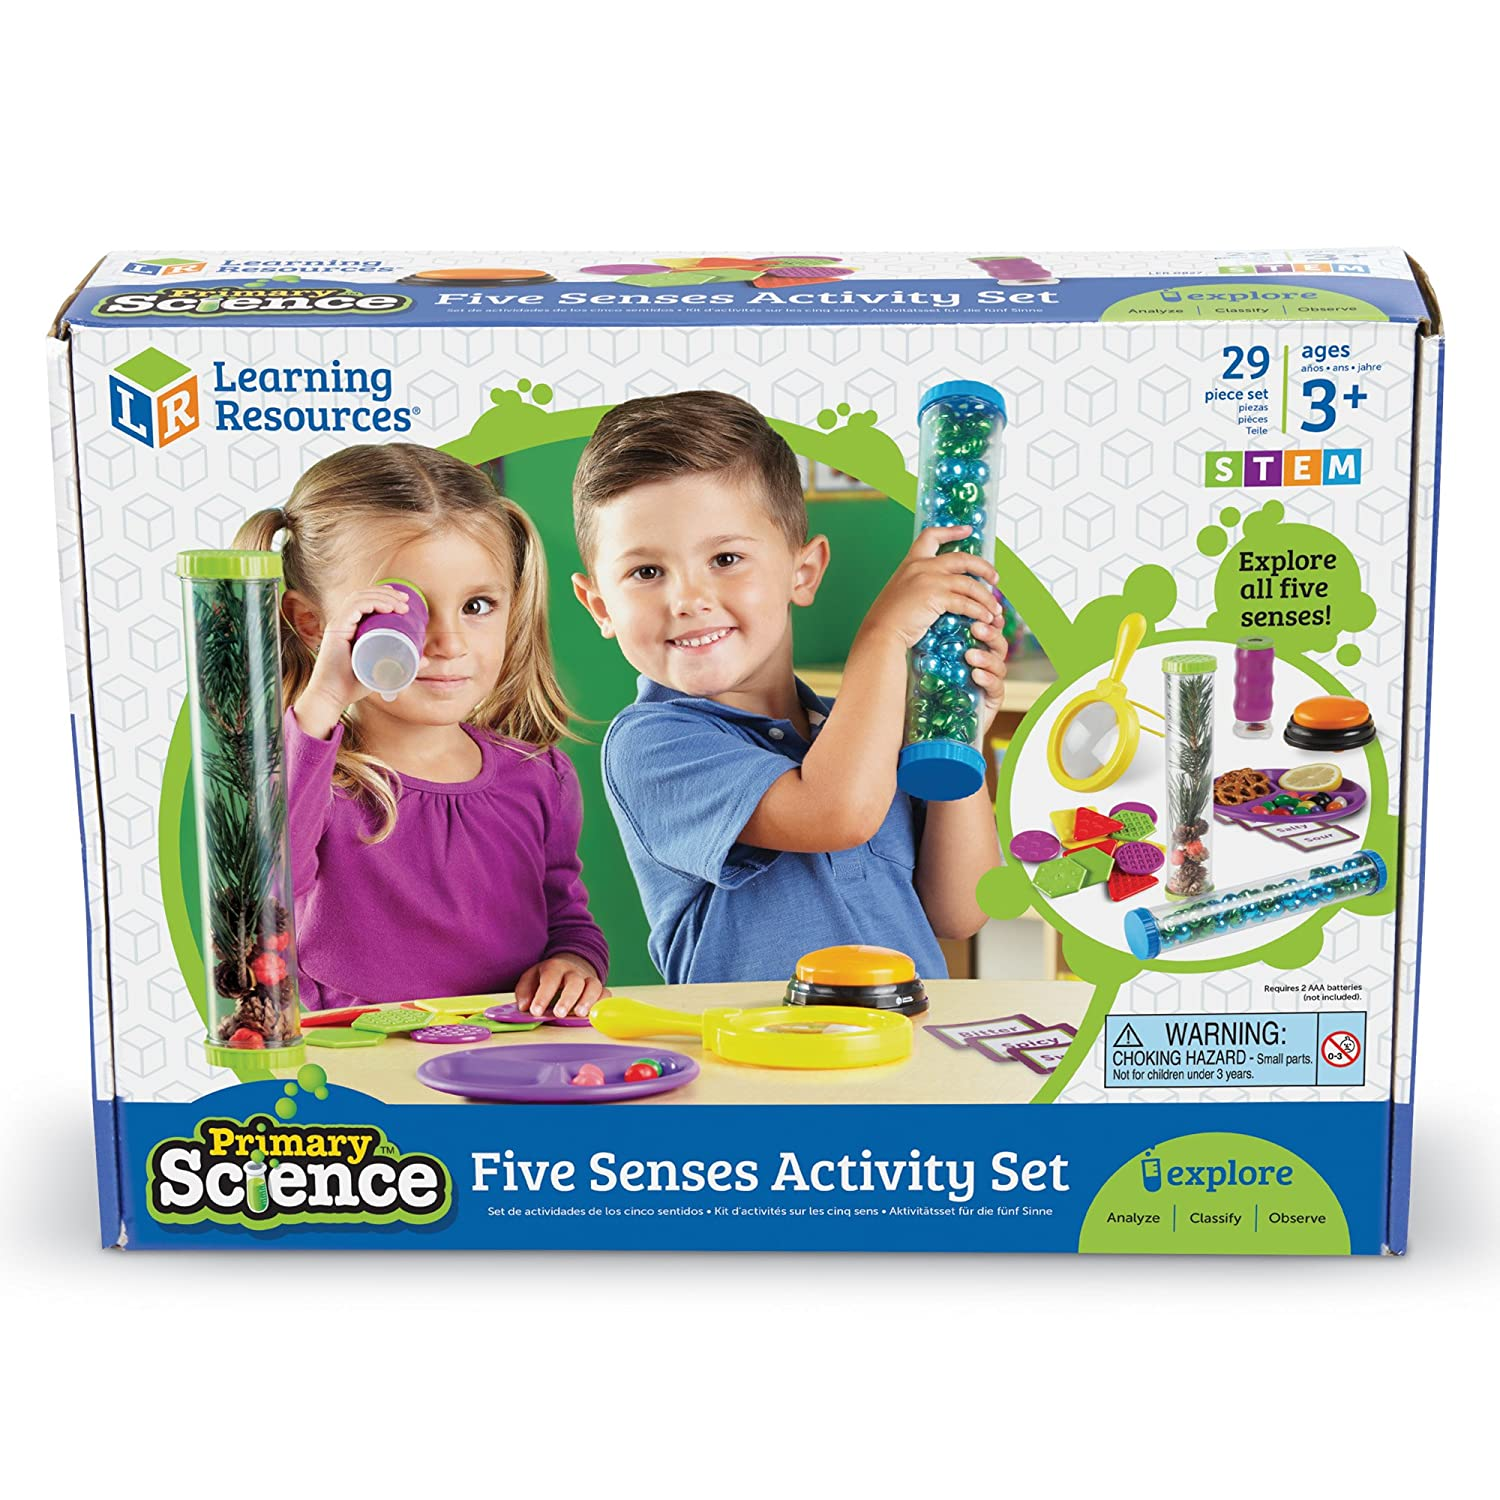 faf378863 Amazon.com: Learning Resources Primary Science Five Senses Activity Set:  Office Products